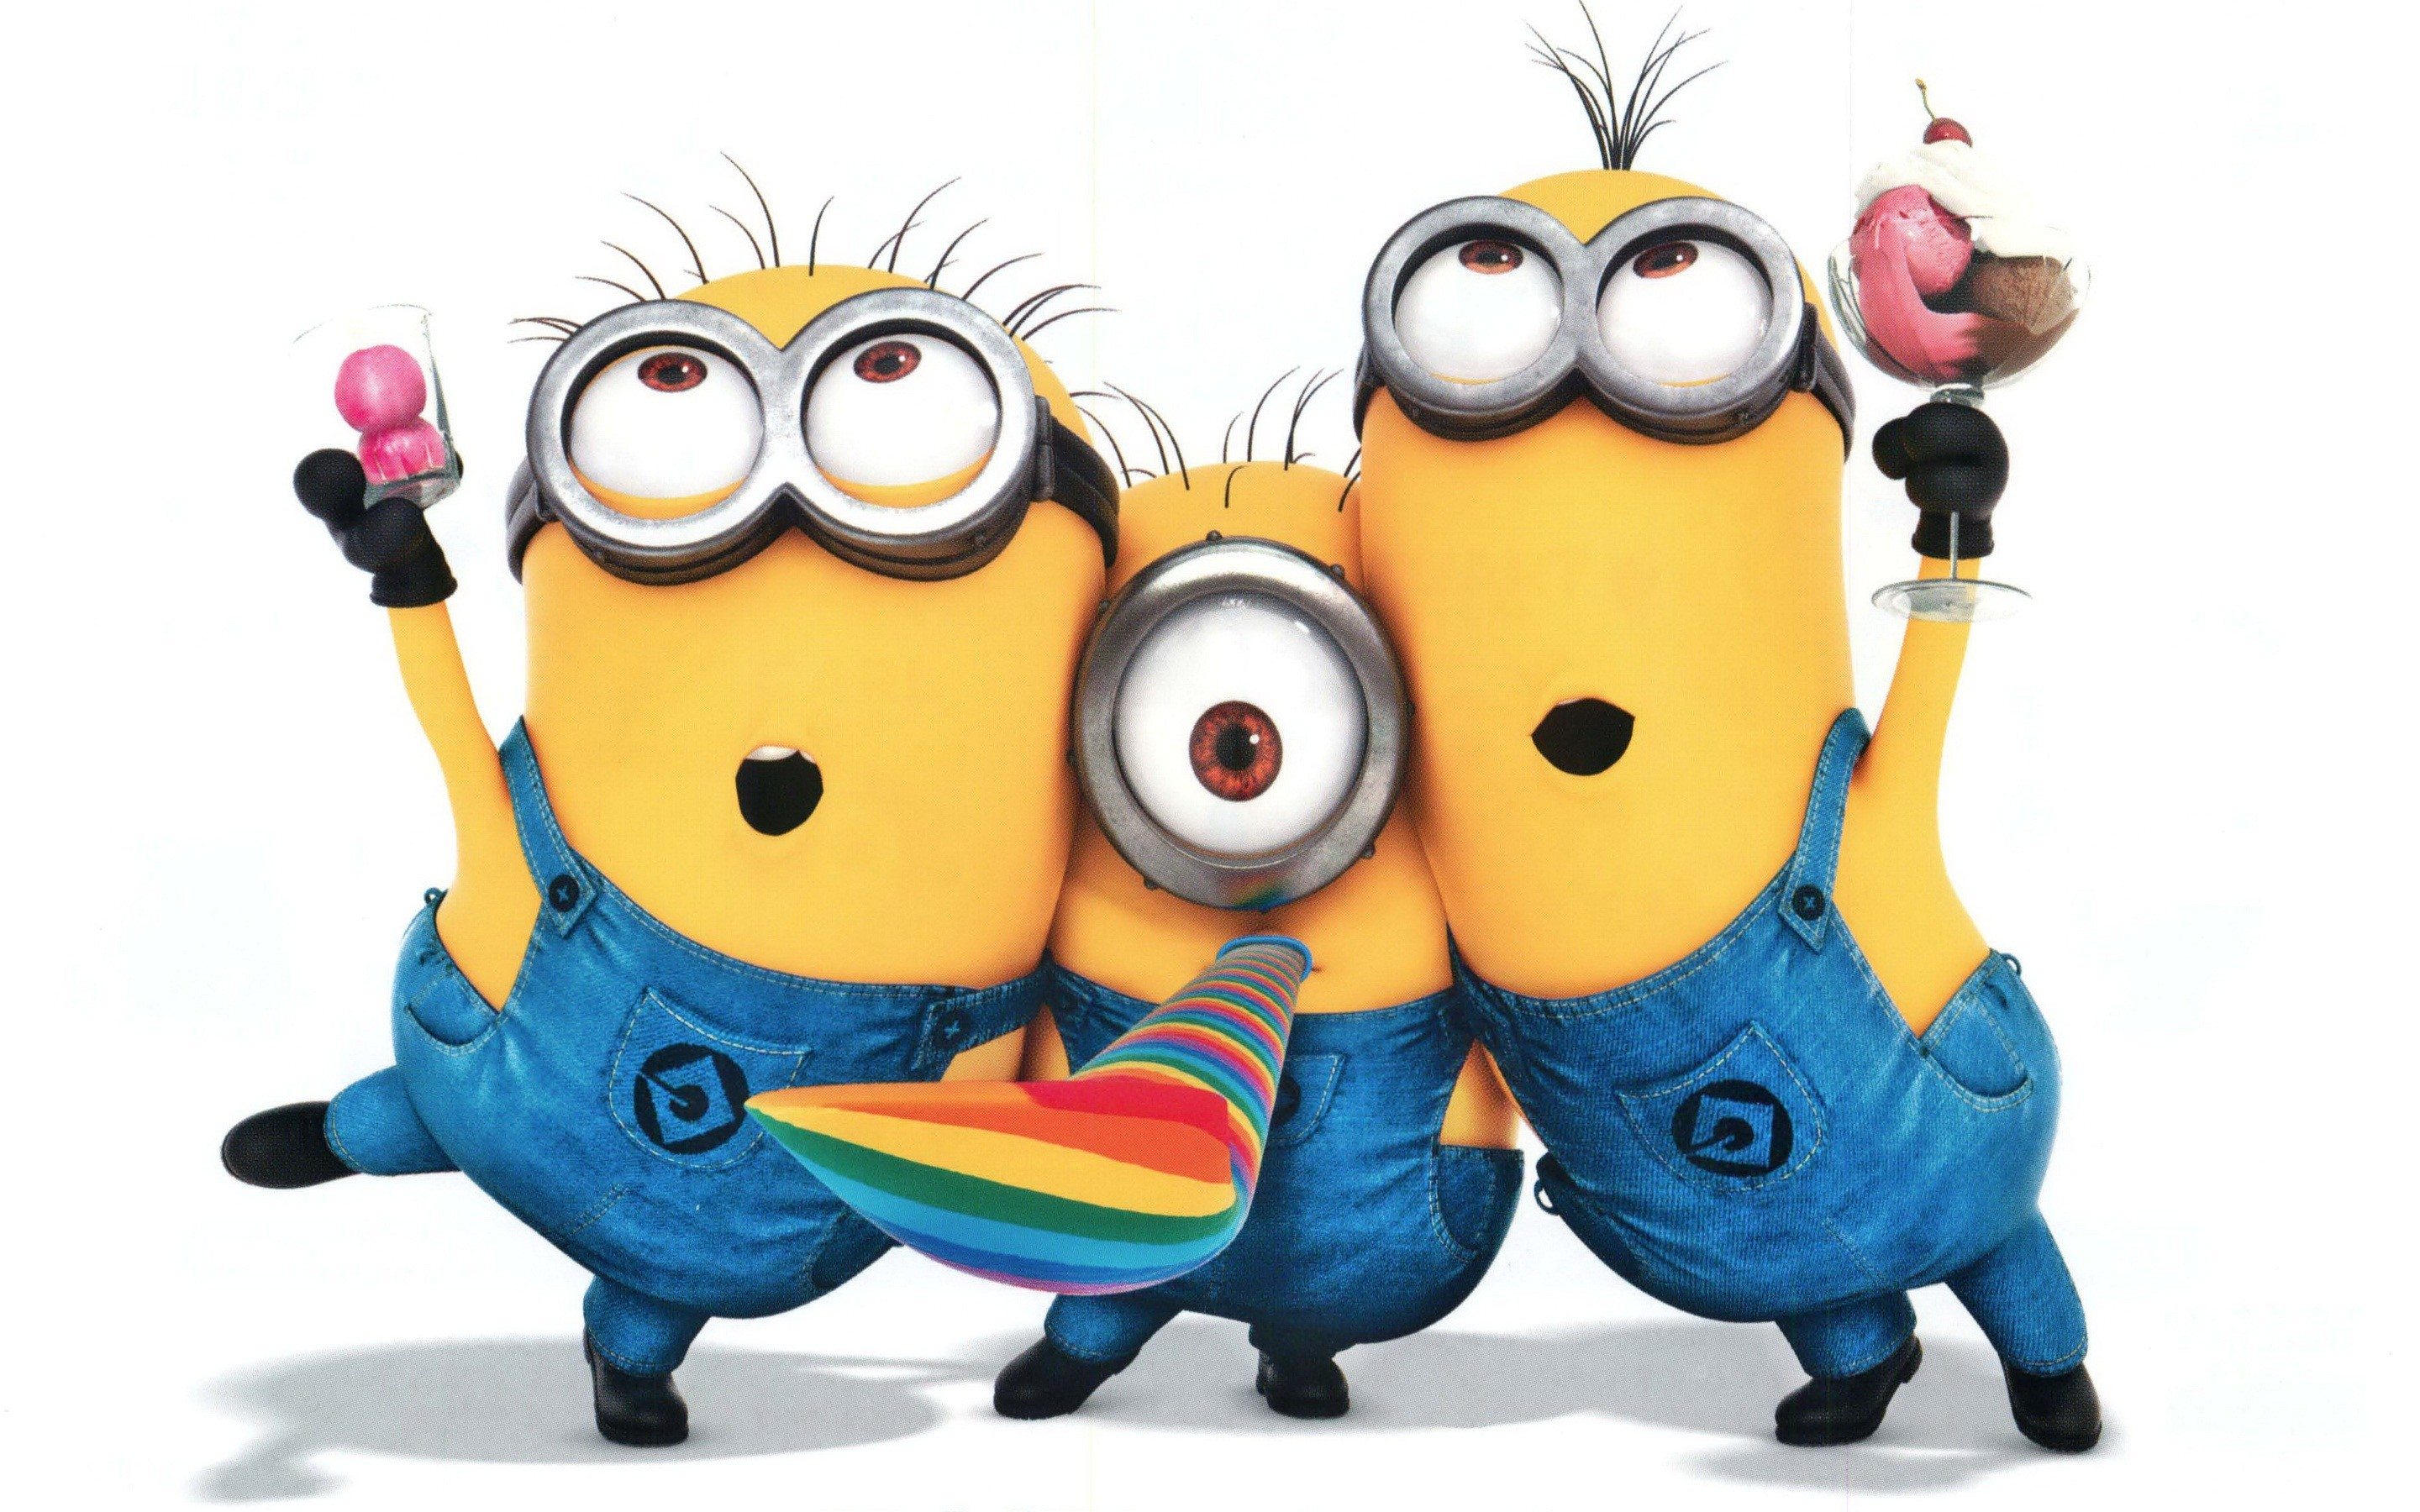 Friend clipart minion. Minions easter wallpaper images